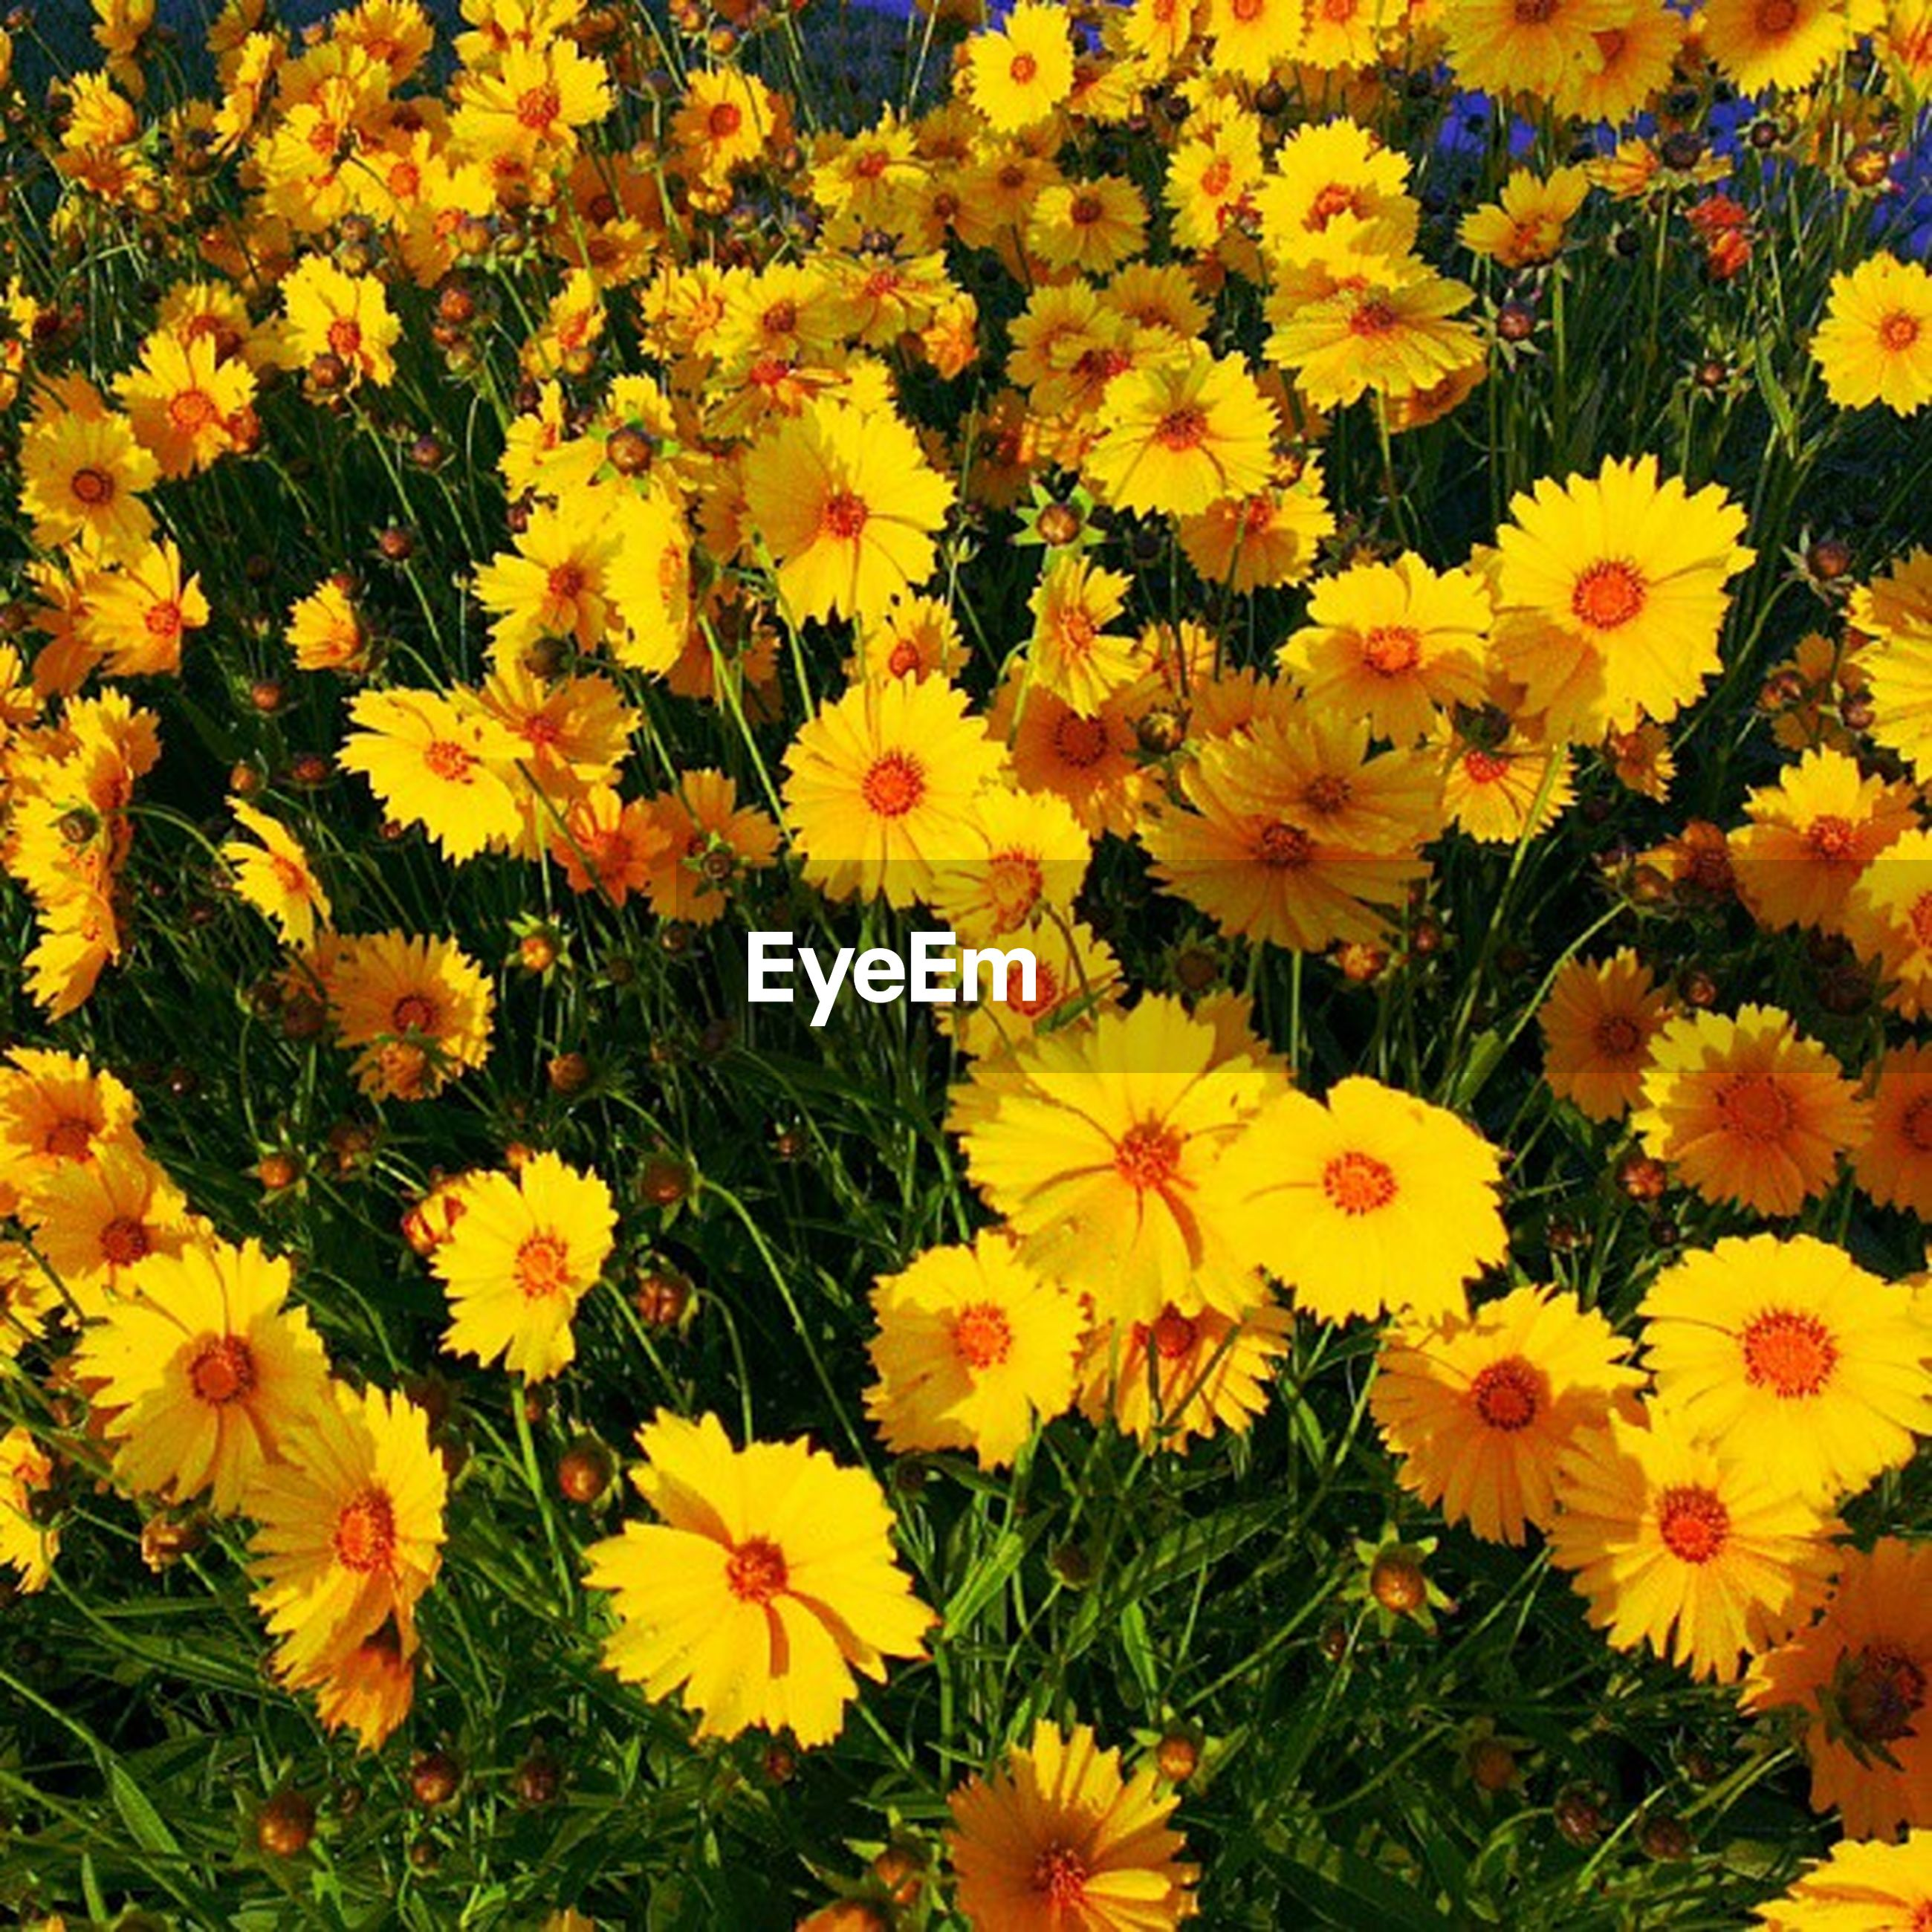 flower, freshness, yellow, petal, fragility, growth, beauty in nature, flower head, blooming, nature, full frame, high angle view, plant, abundance, field, backgrounds, in bloom, blossom, park - man made space, outdoors